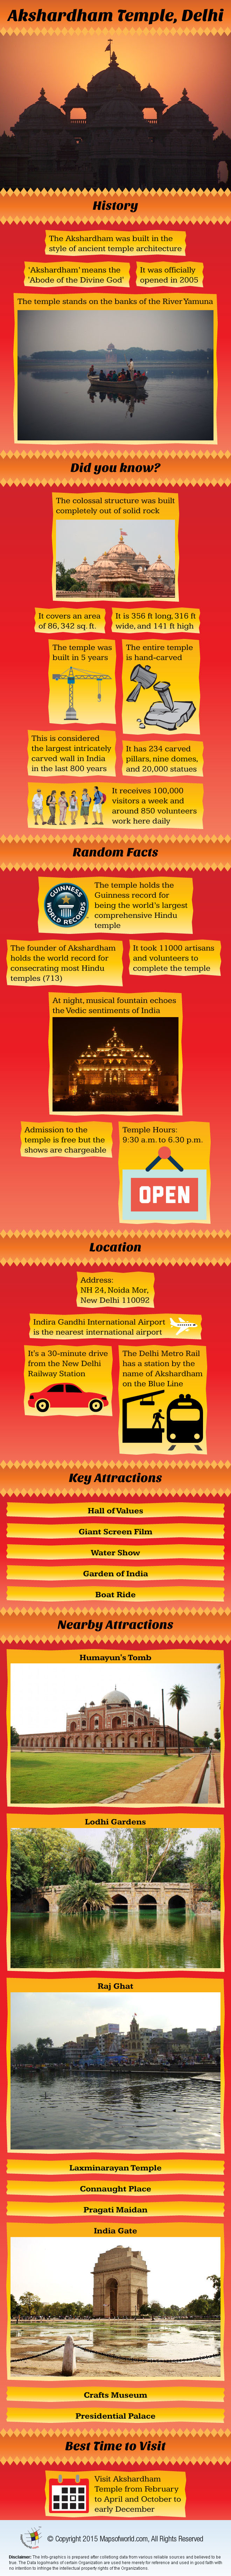 Akshardham Travel Infographic